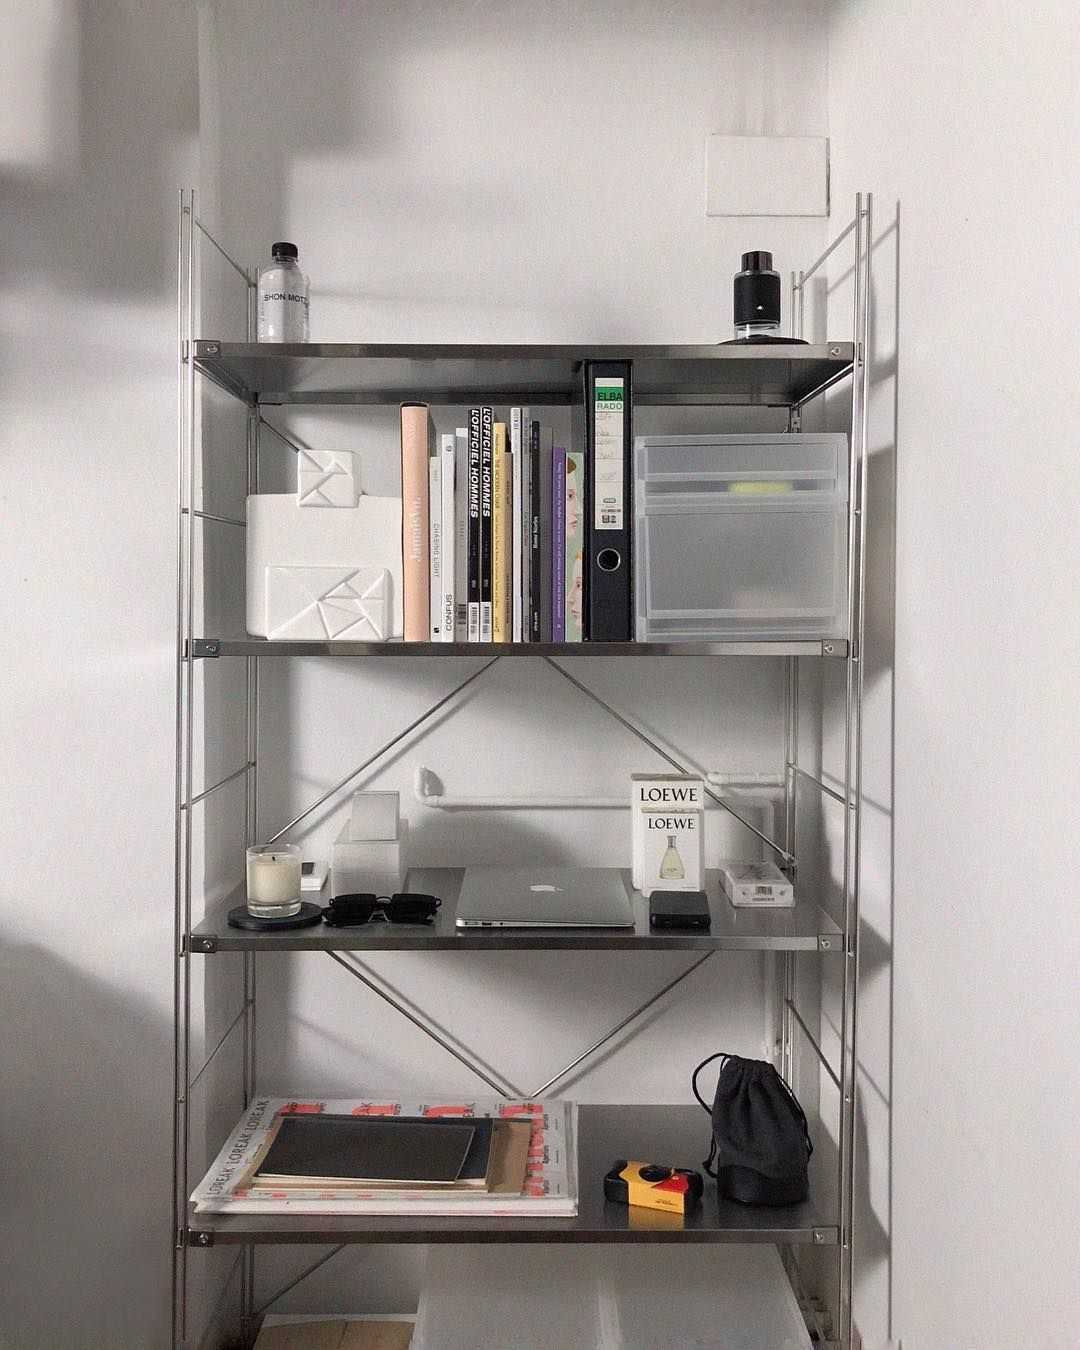 Joan Pala On Instagram Stainless Steel Shelf Via Muji Spain